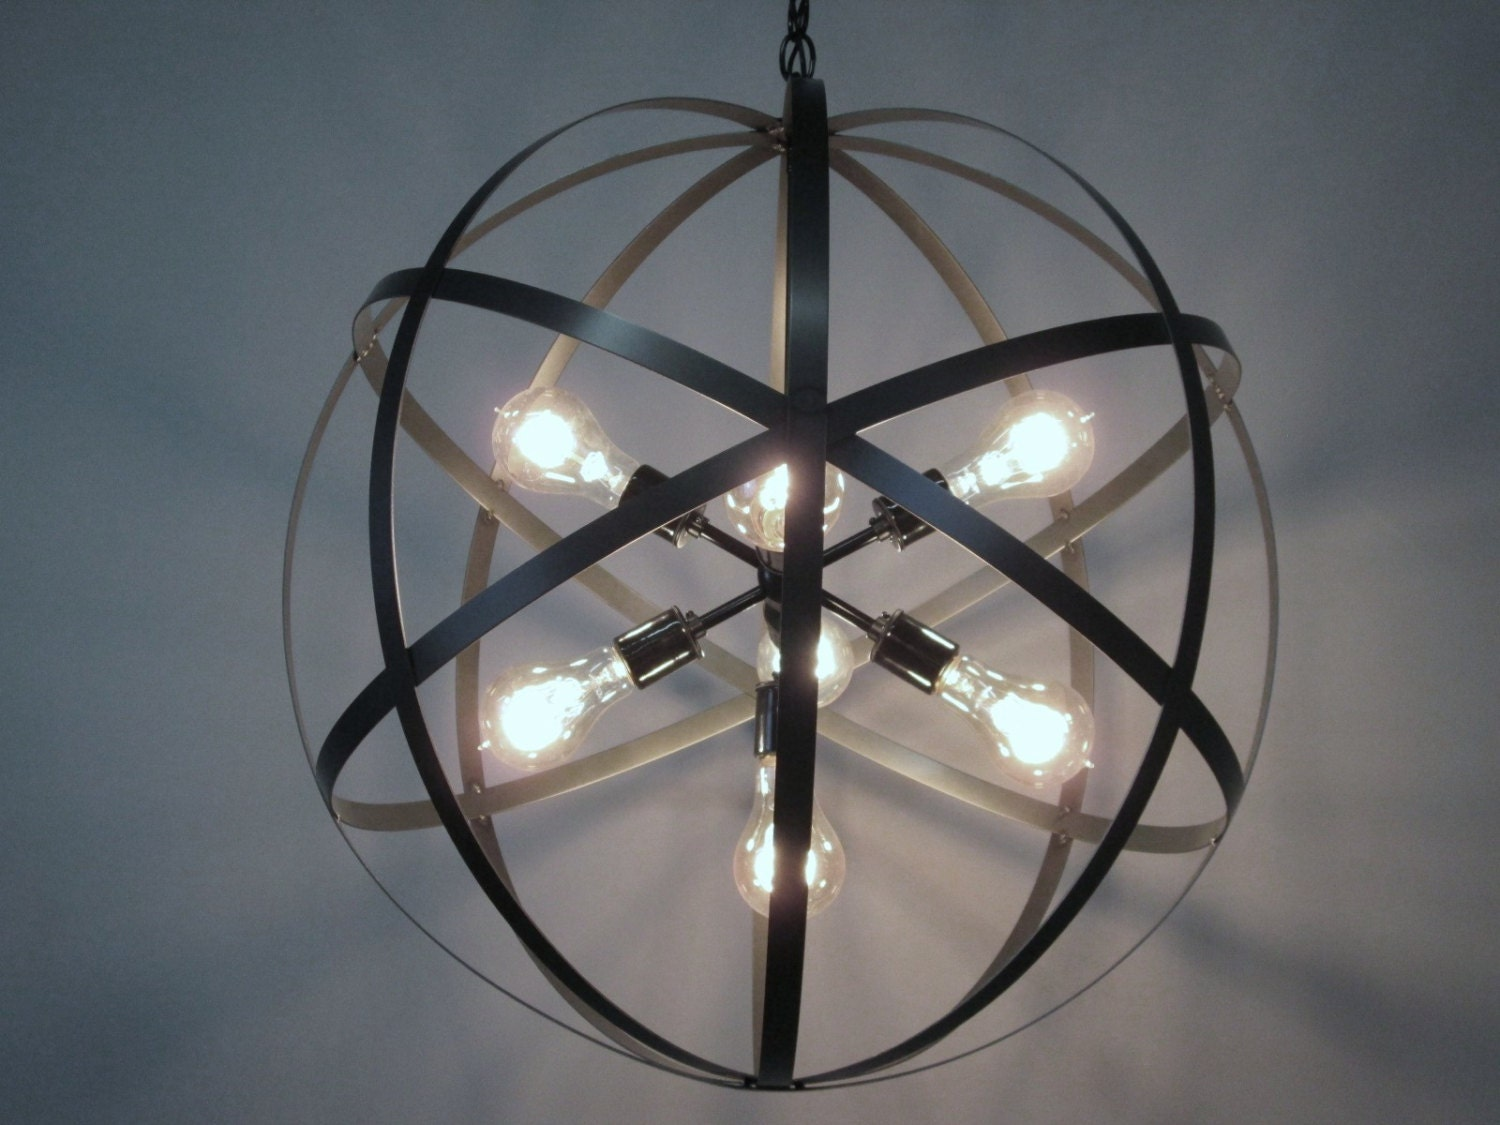 Modern industrial orb chandelier ceiling light 24 inch sphere - Can light chandelier ...